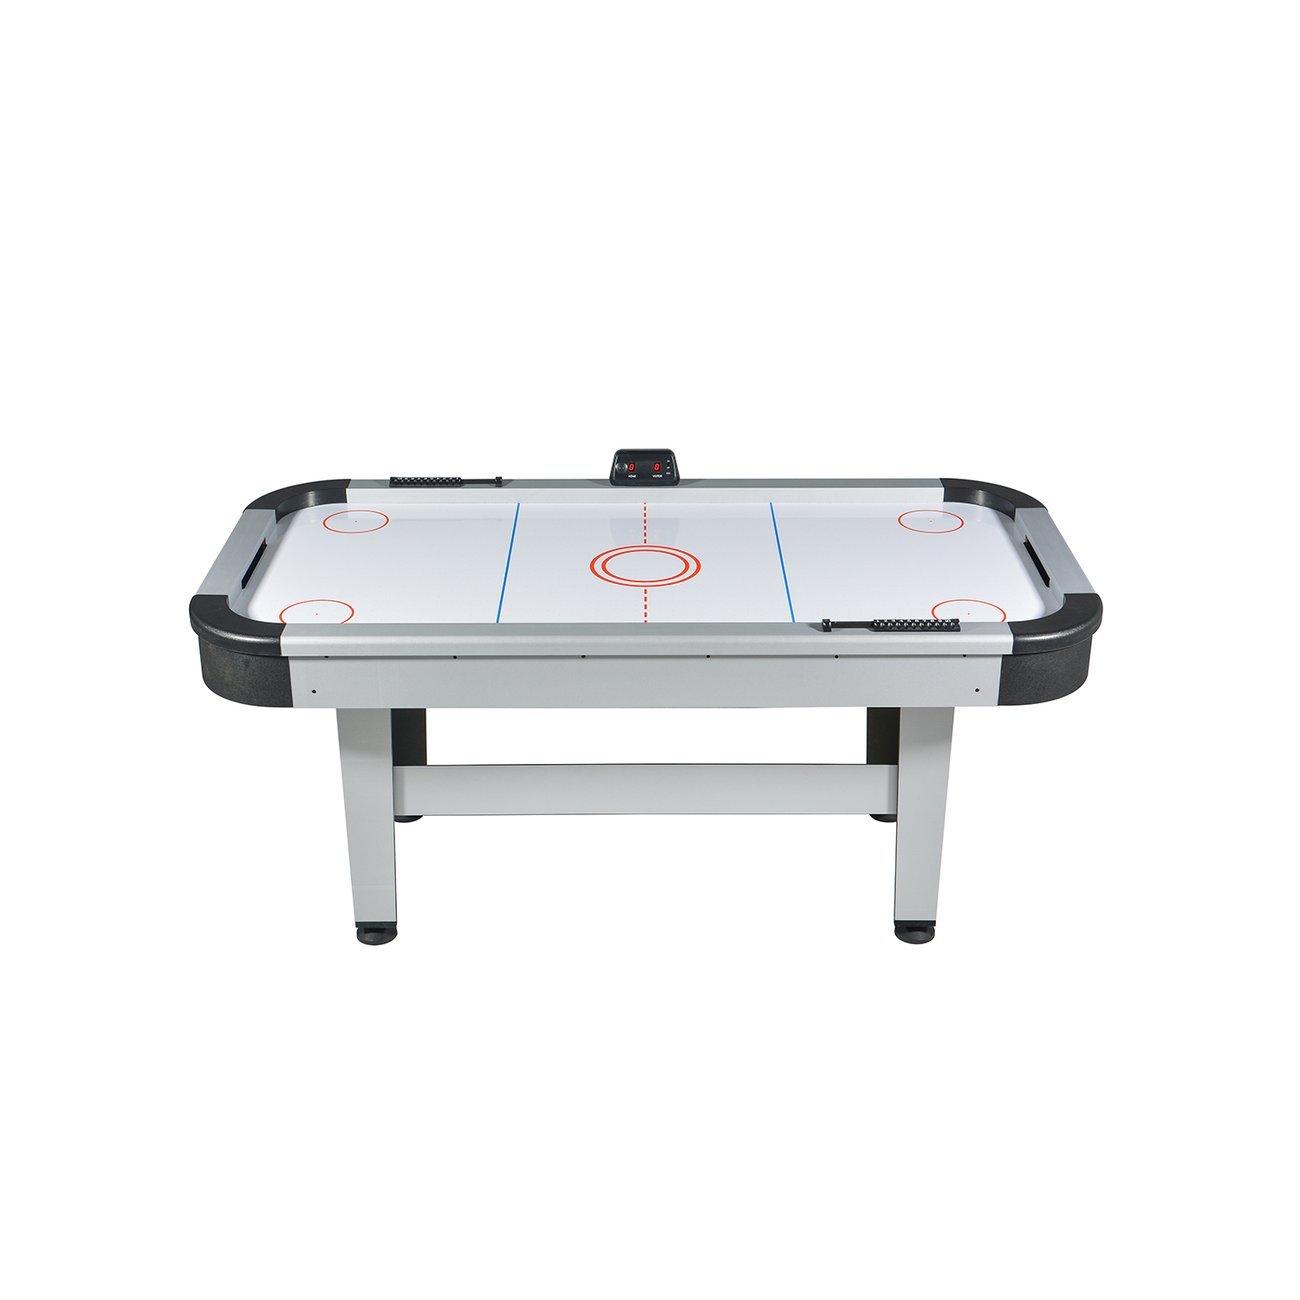 Table solde Inspirant Loisirs Jt2d Table De Air Hockey Deluxe 185x94cm Of 40 Frais Table solde